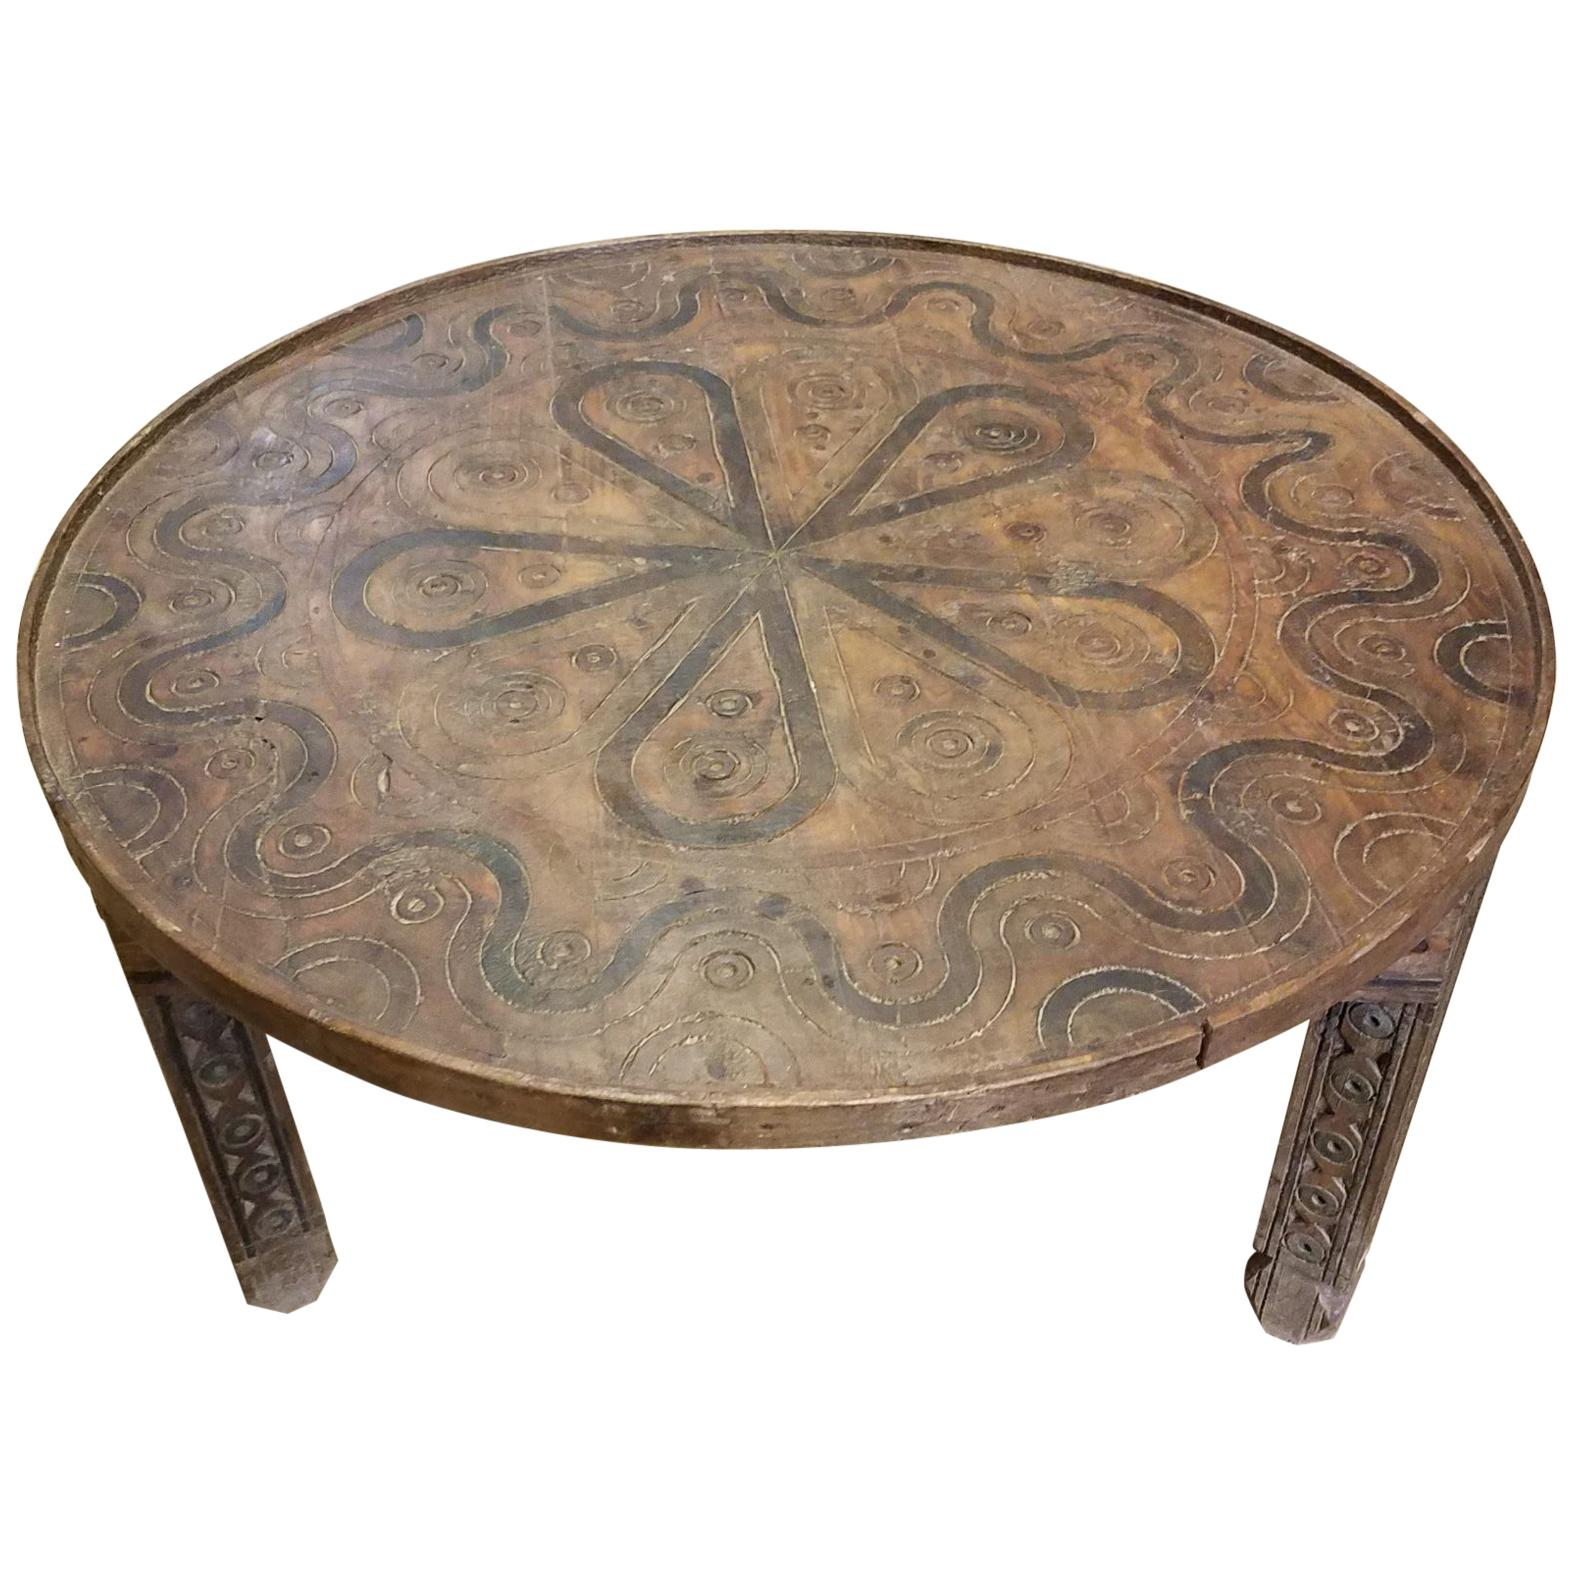 Moroccan Hand Carved Coffee Table, Round And Simple For Sale